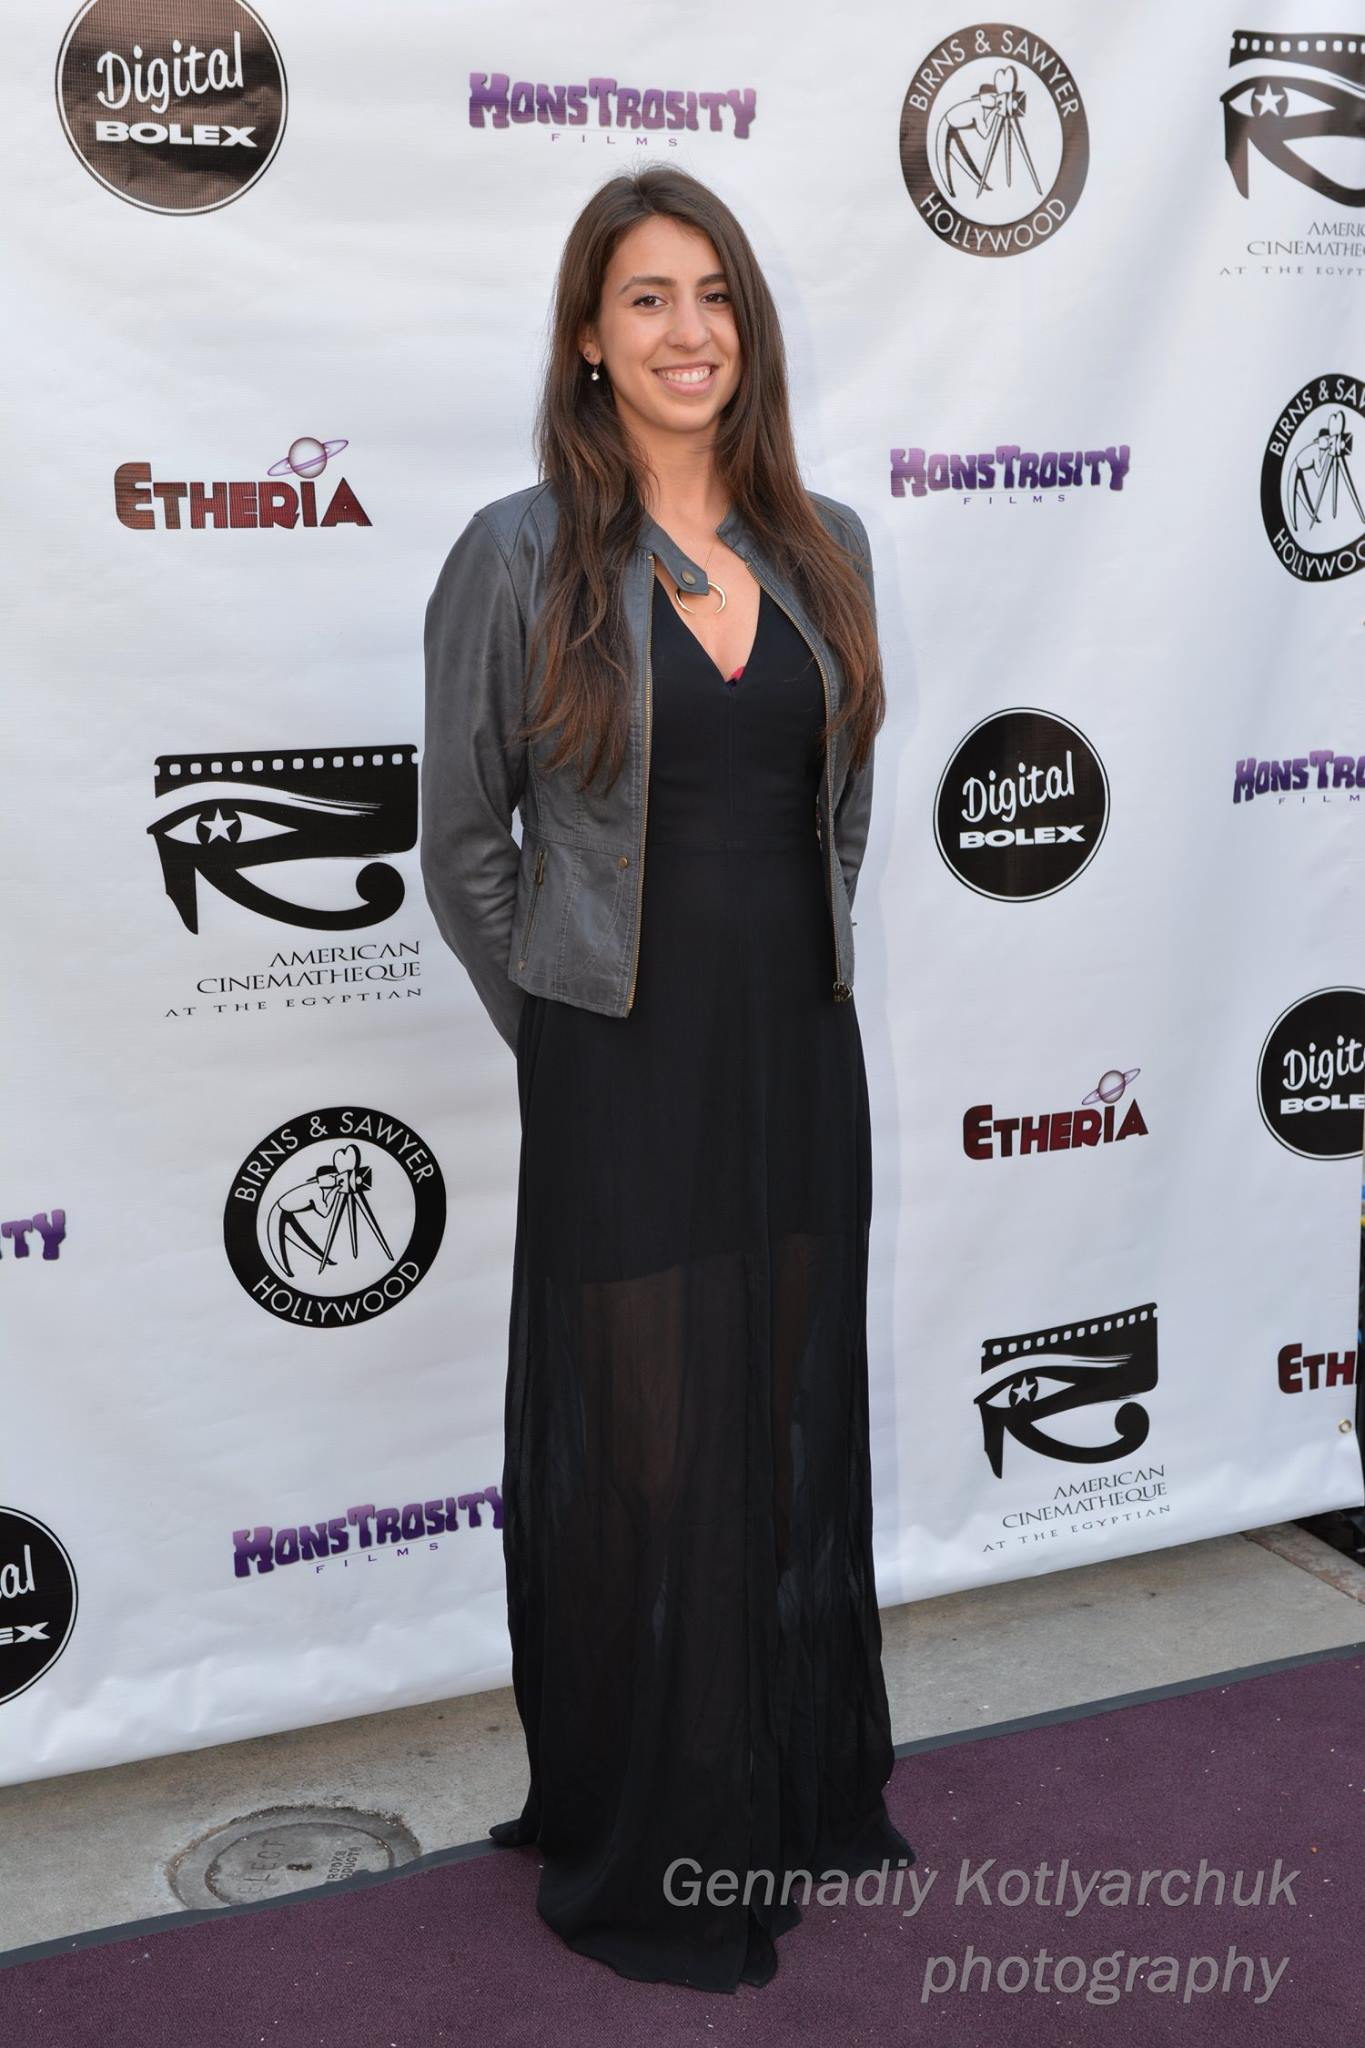 Mara Tasker at Etheria Film Night 2015